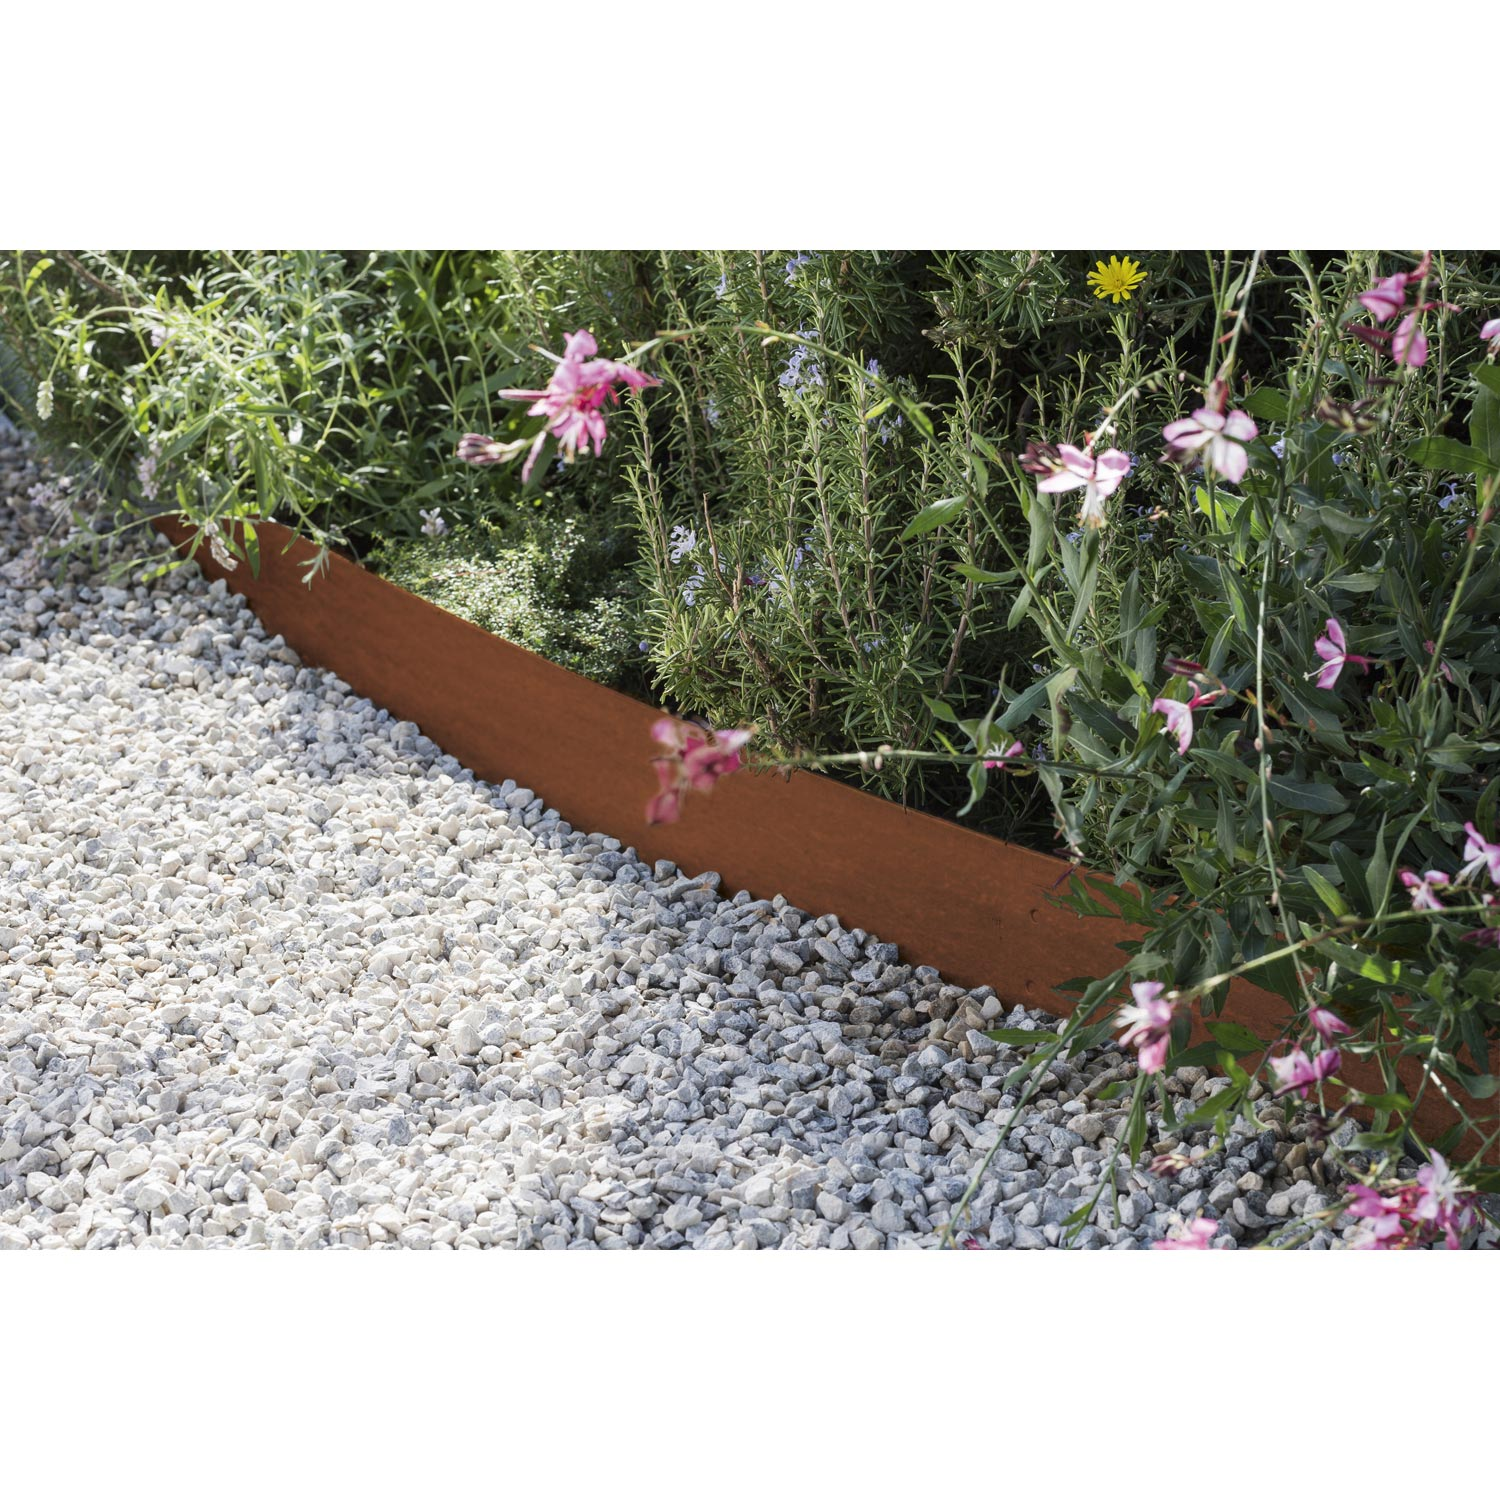 Bordure A Planter Aspect Rouille Acier Galvanise Marron H 13 X L